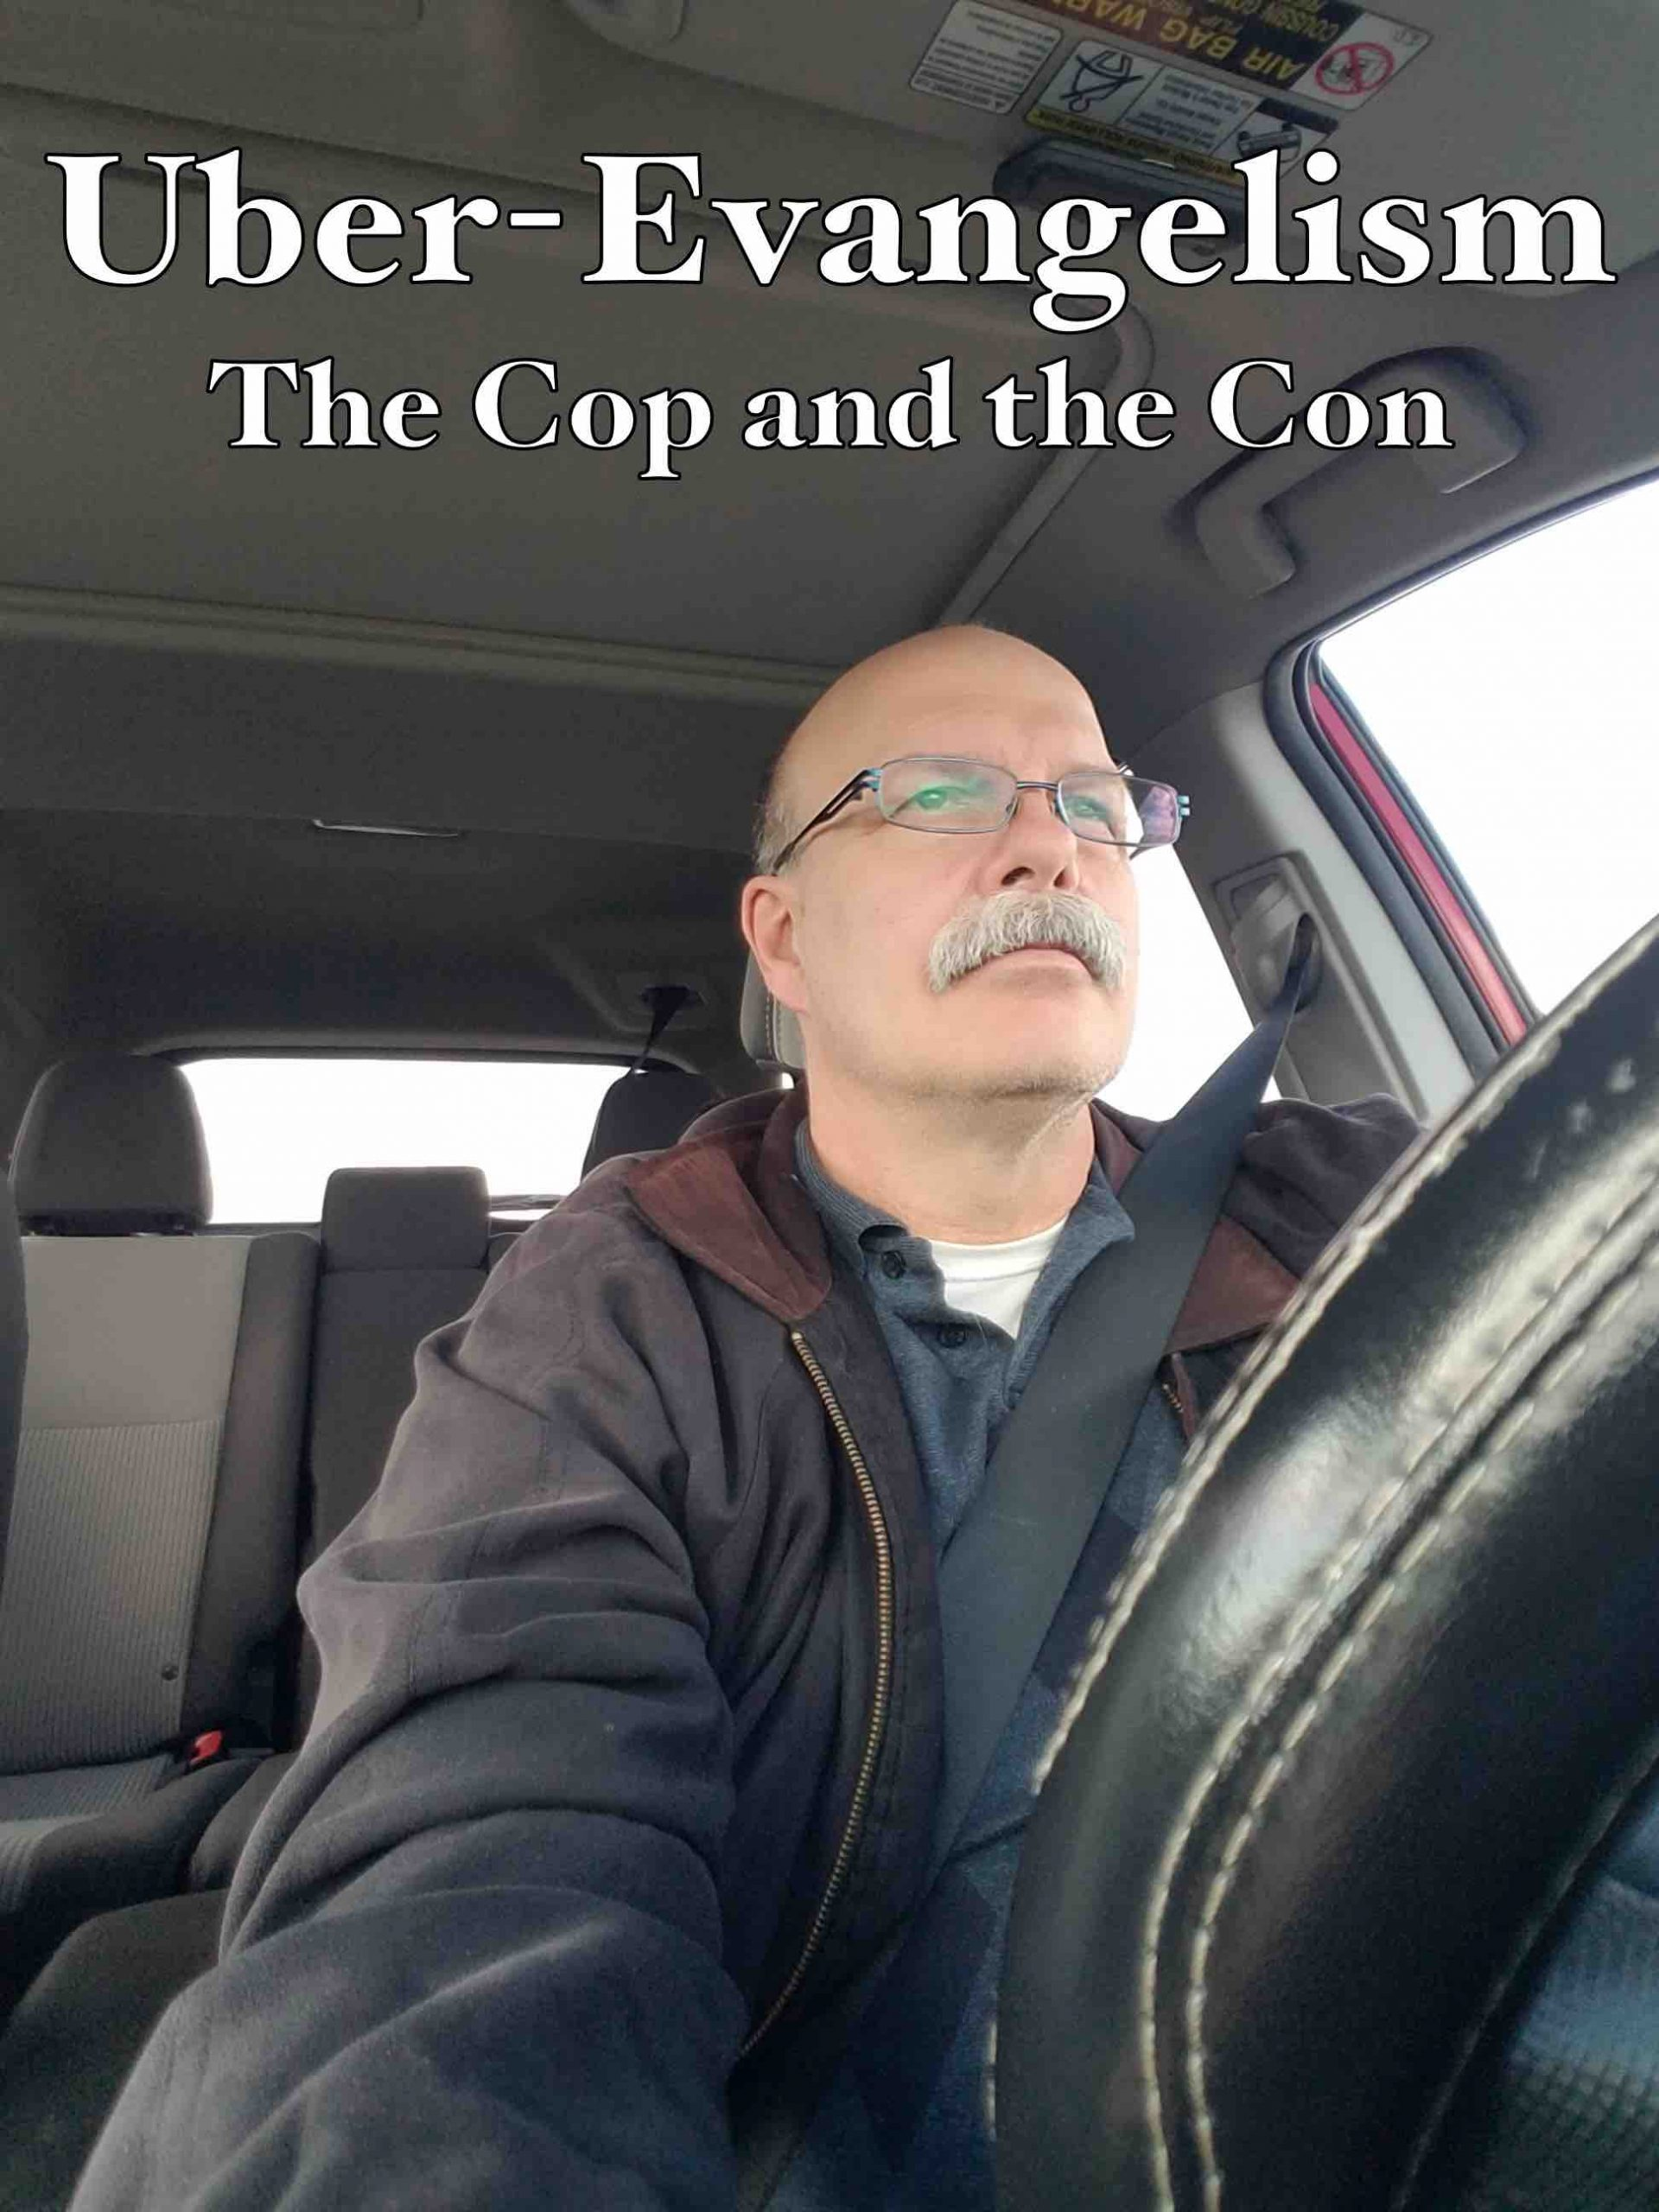 Uber-Evangelism: The Cop and the Con